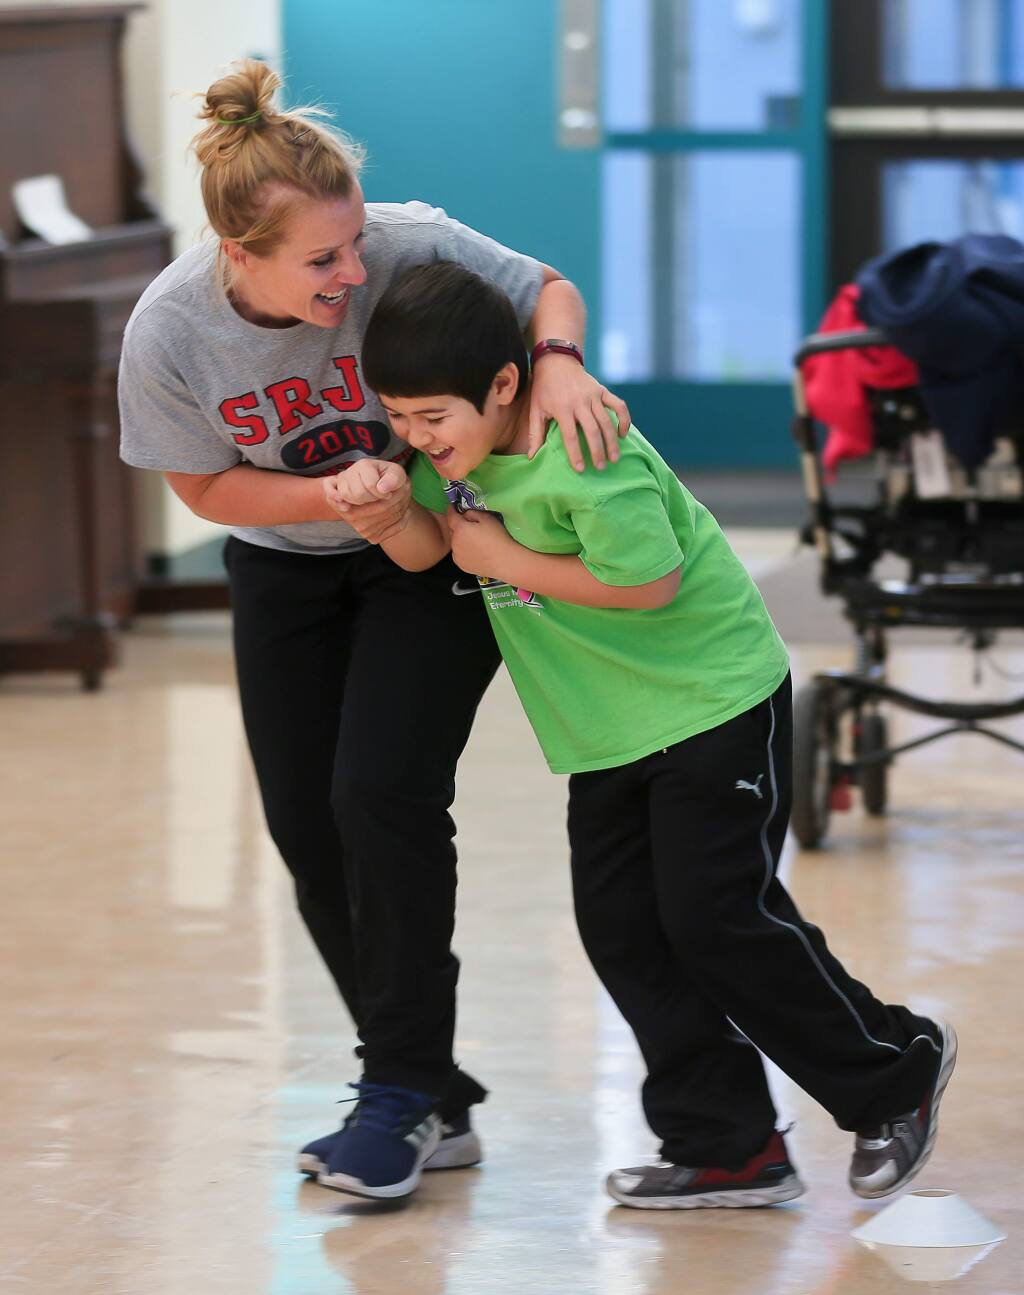 Education specialist Katya Robinson, left, plays with one of her former students, Jaxon Ono, during a physical education class at Park Side Elementary School in Sebastopol on Friday, October 11, 2019. (Christopher Chung/ The Press Democrat)